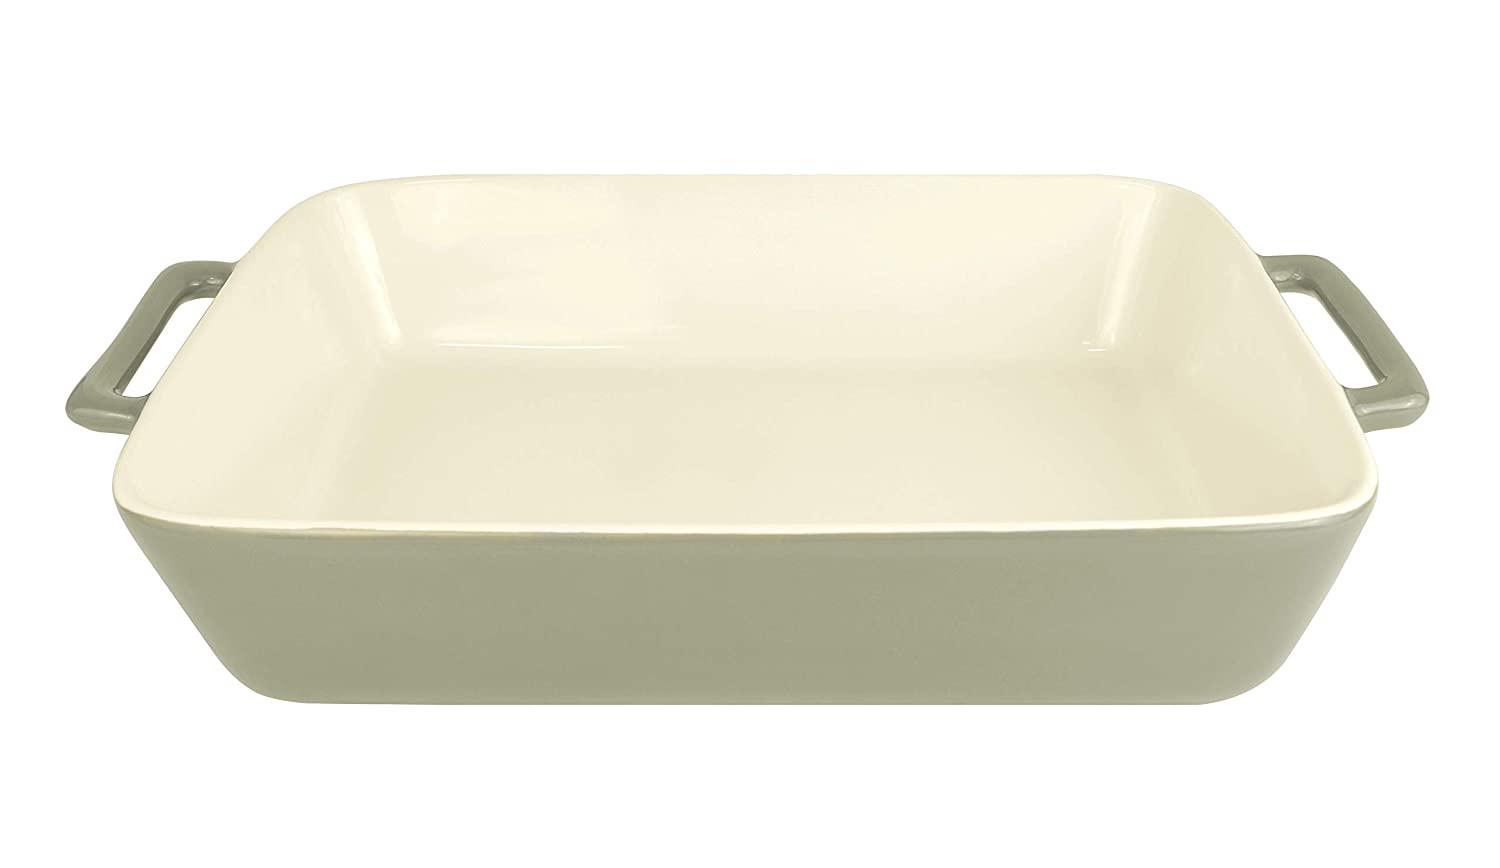 LE REGALO HW1224 Rectangular Stoneware Baking Dish, 13.5x8.25x2.5 White